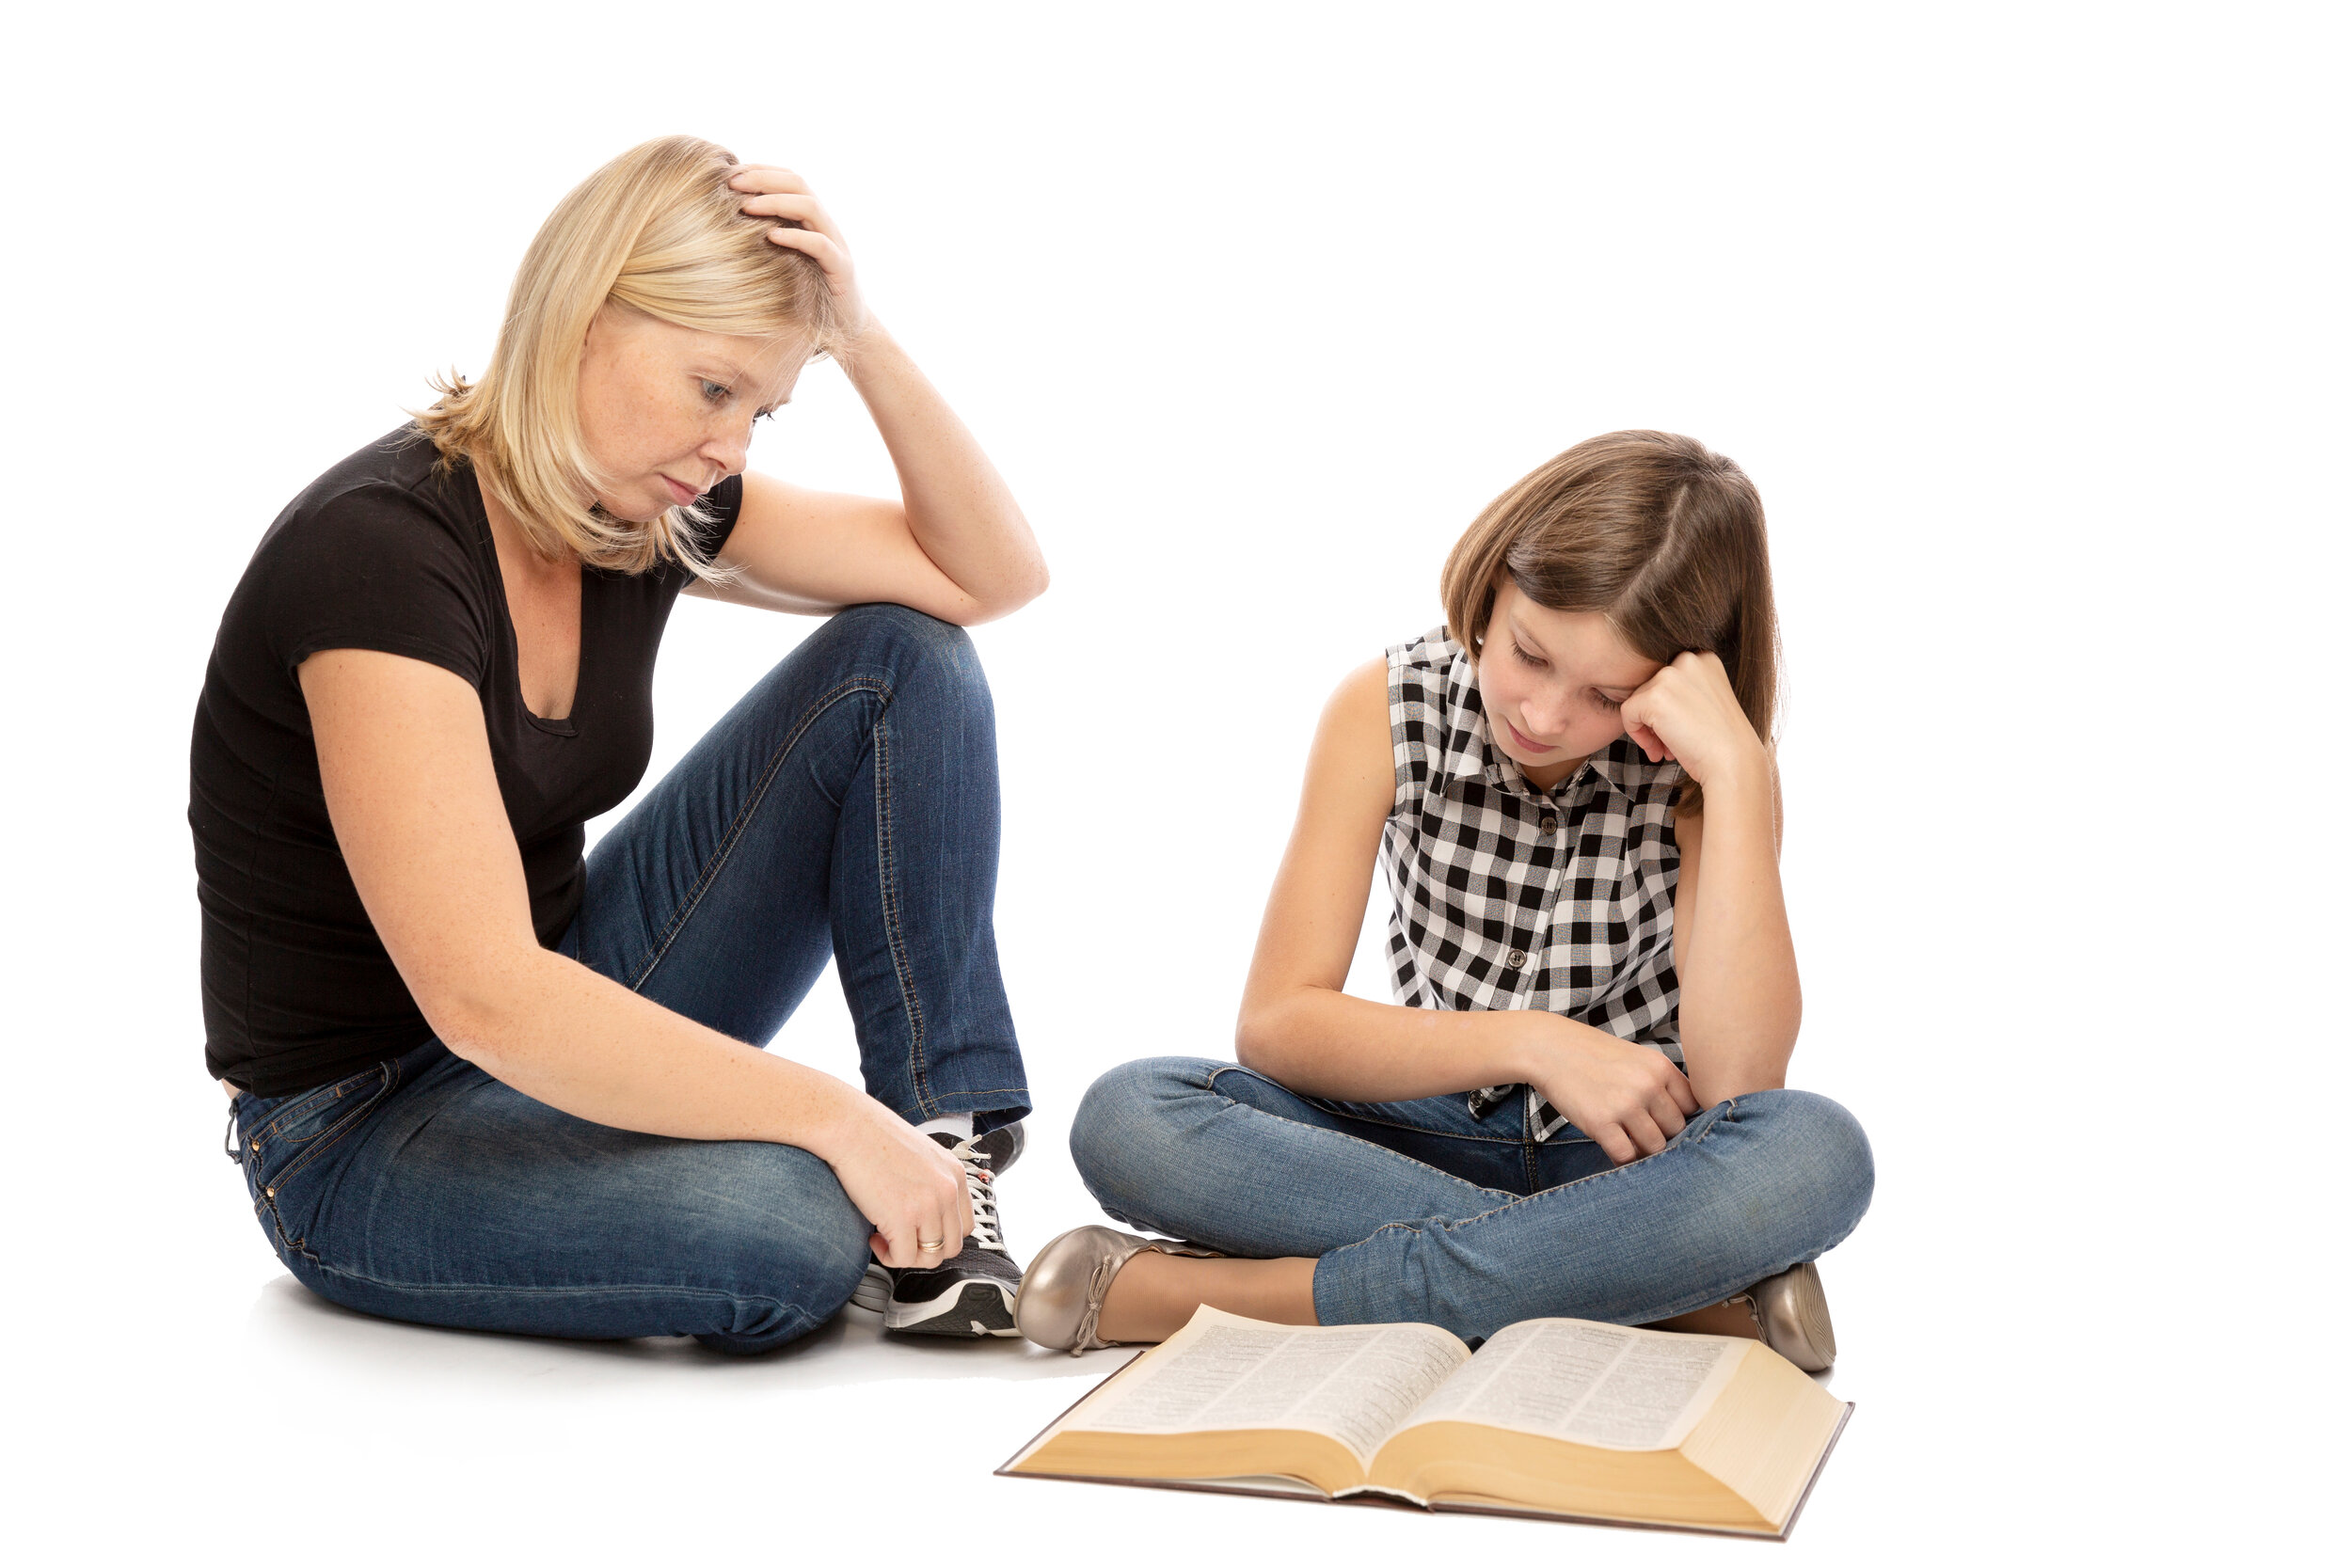 You are not alone. - Many children struggle to read and parents struggle to locate effective programs. Sadly, many parents are given information that causes them to delay evaluation.Trust your instincts. Get Help, NOW!